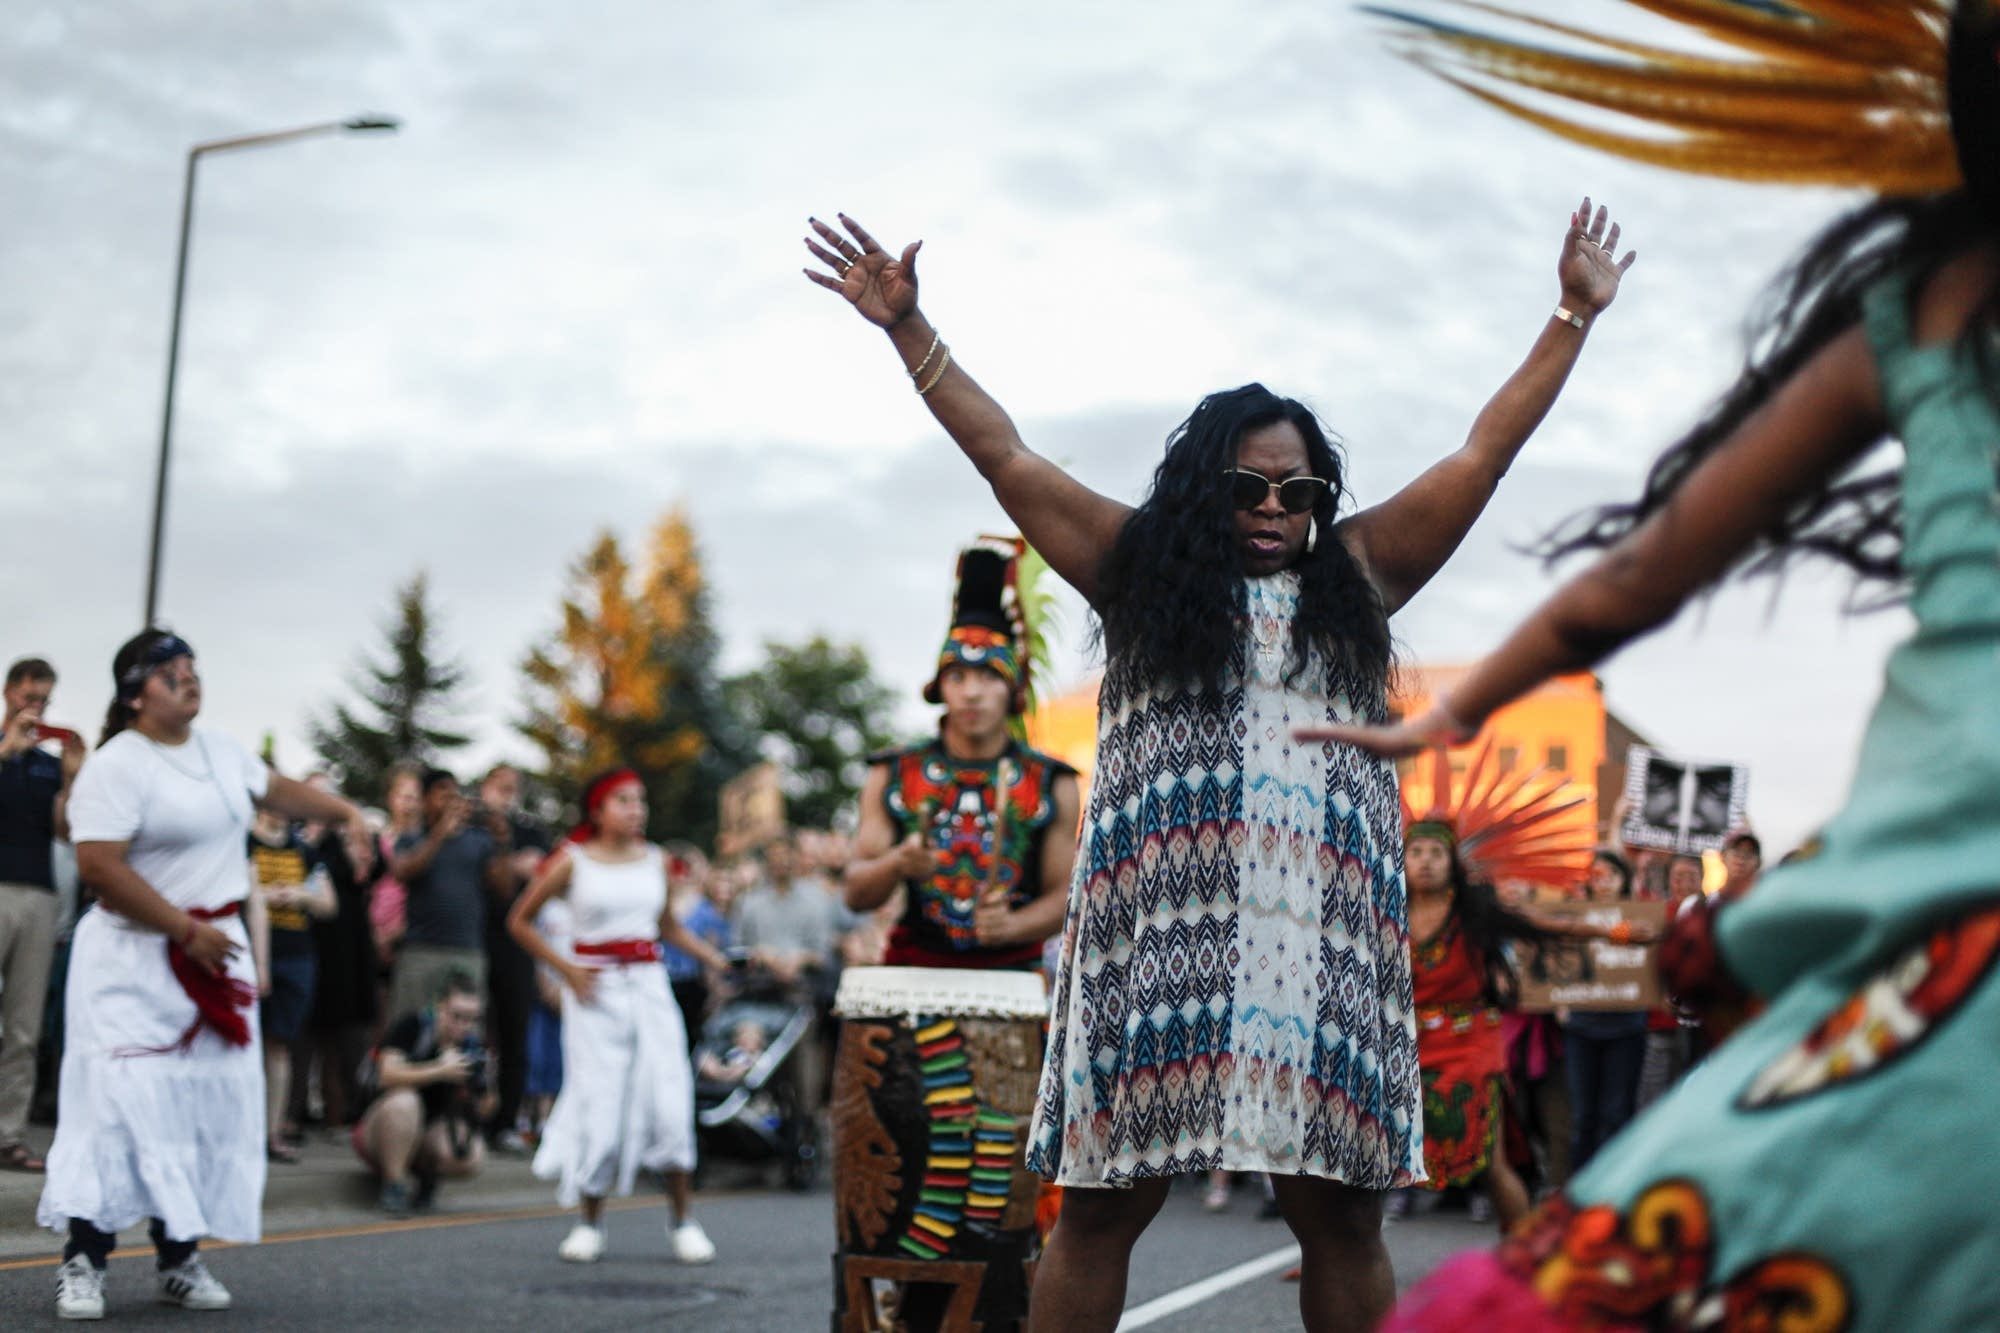 Valerie Castile, mother of Philando Castile dances during protest